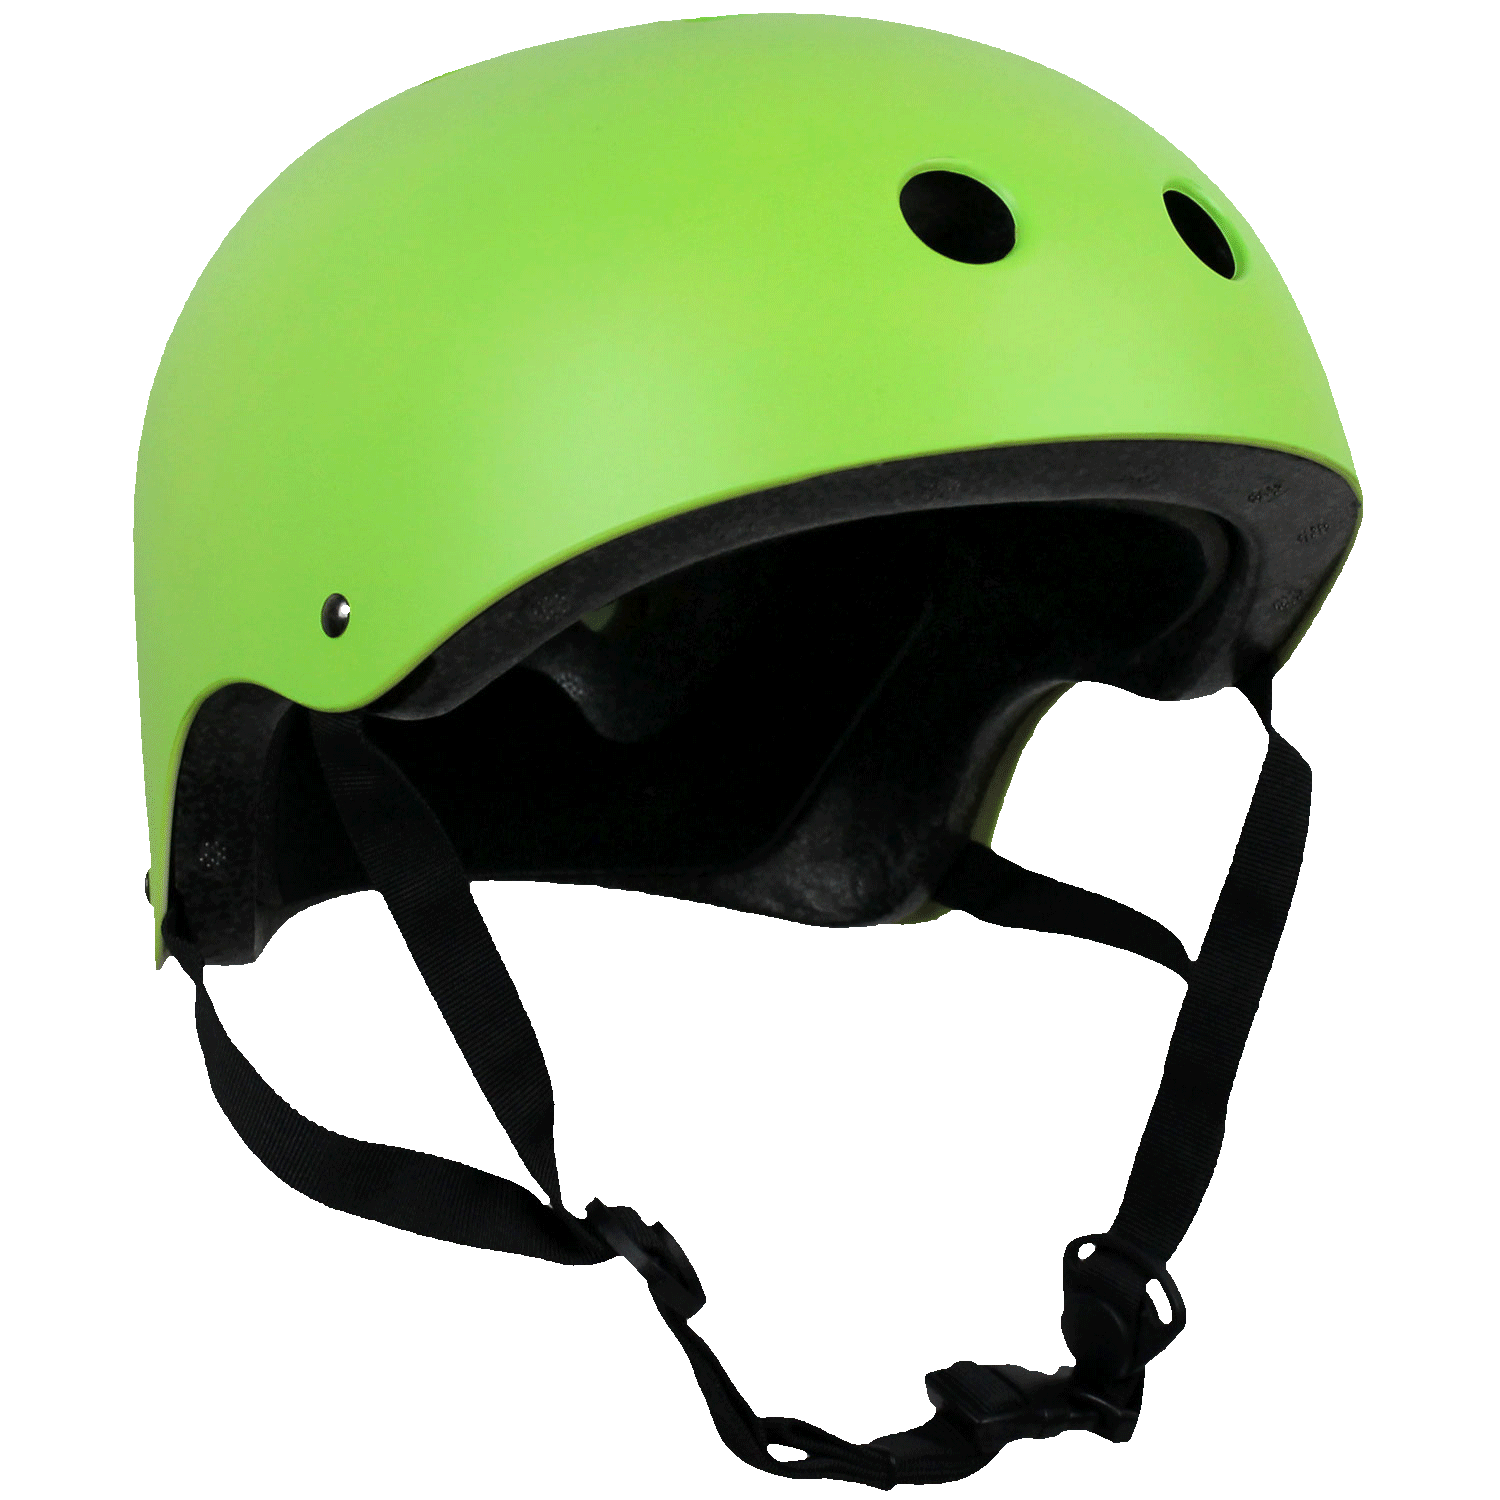 Krown Adult Skateboard Helmet Neon Green/Black OSFA